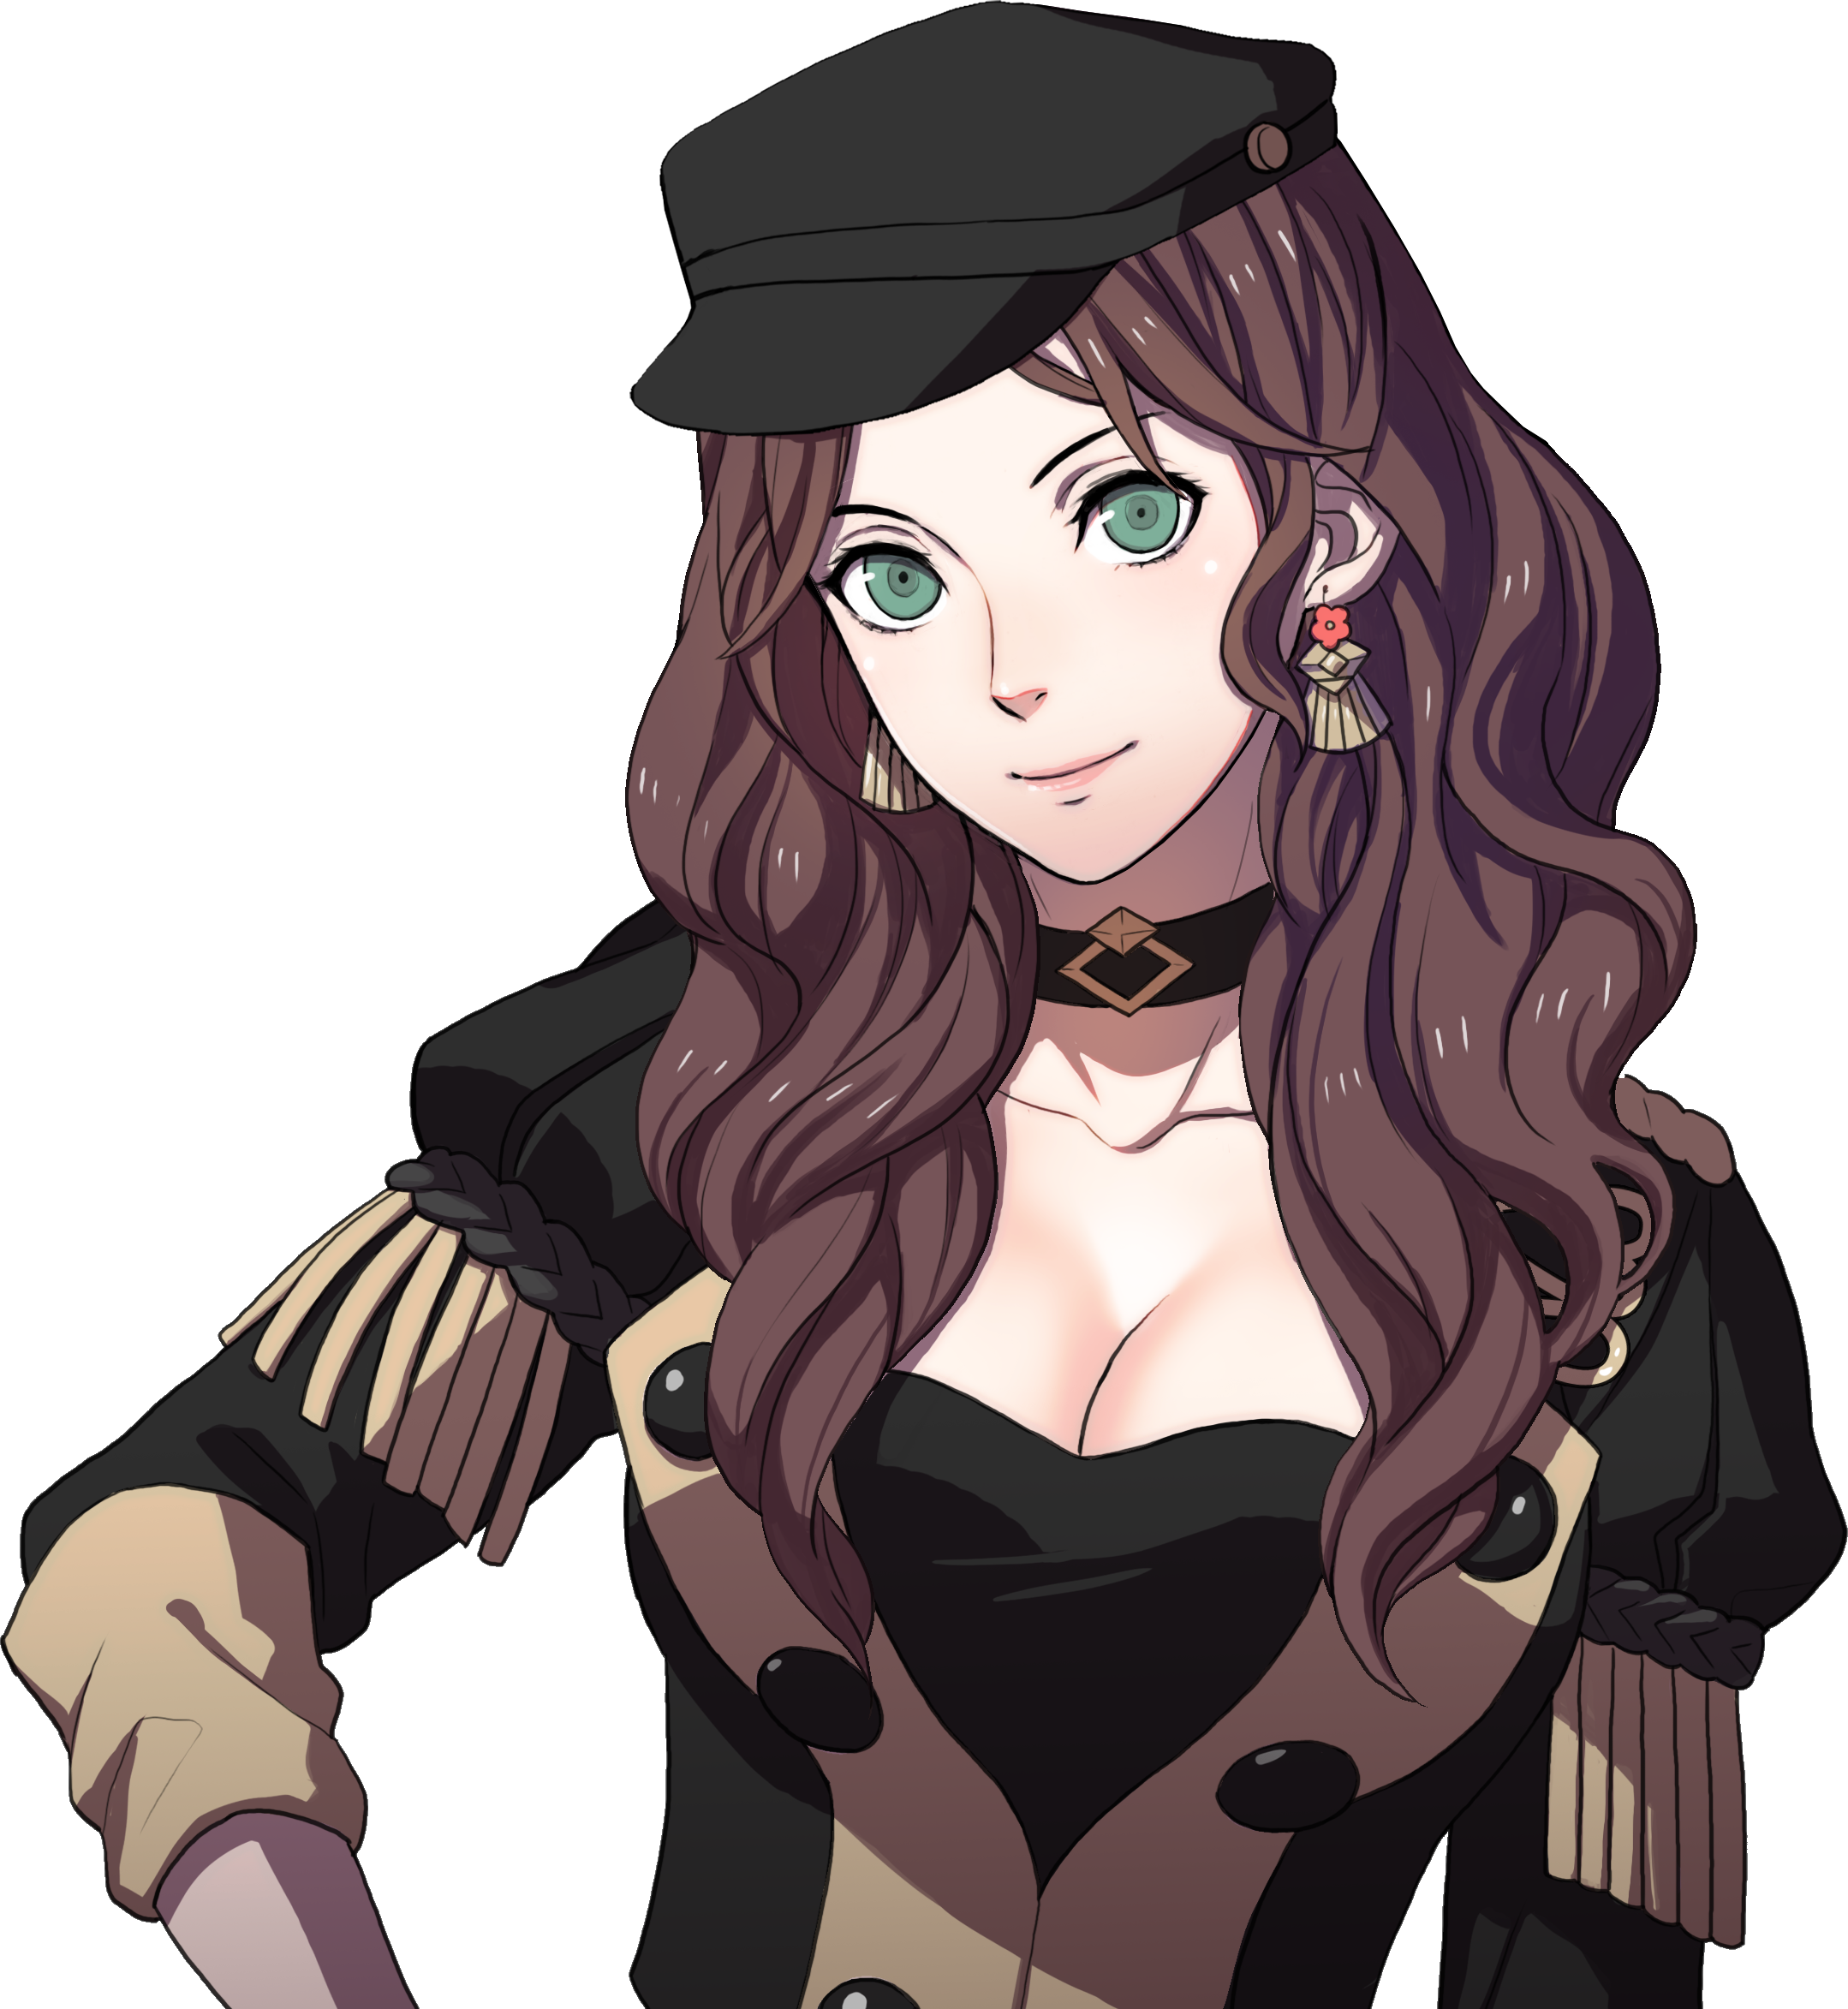 Dorothea | Fire Emblem Wiki | FANDOM powered by Wikia